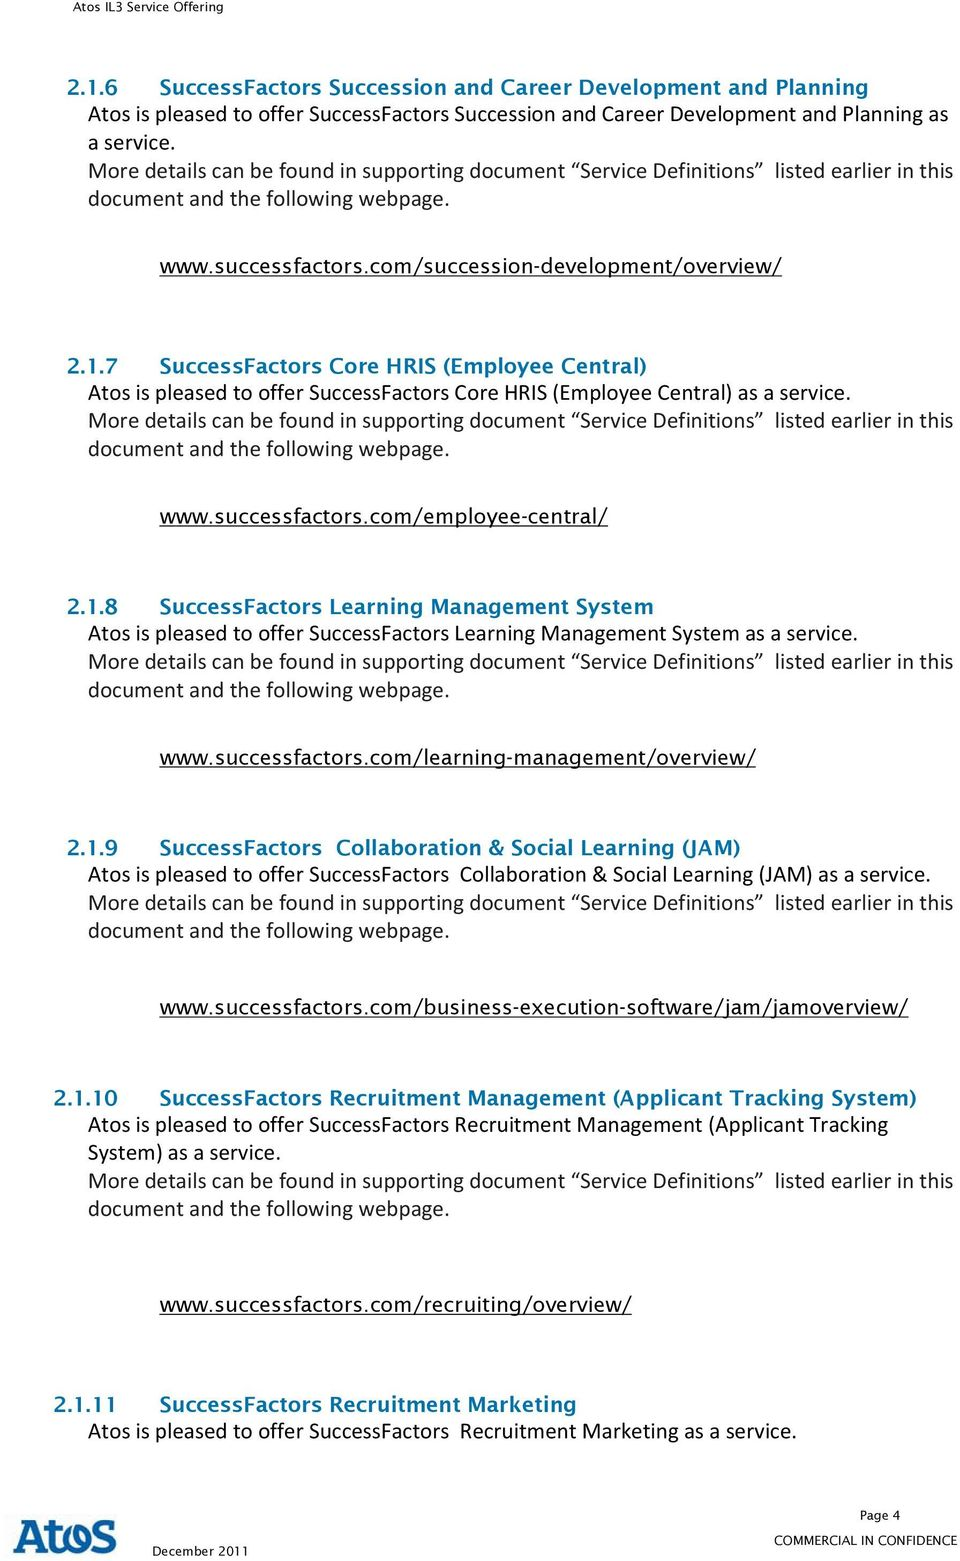 com/employee-central/ 2.1.8 SuccessFactors Learning Management System Atos is pleased to offer SuccessFactors Learning Management System as a service. www.successfactors.